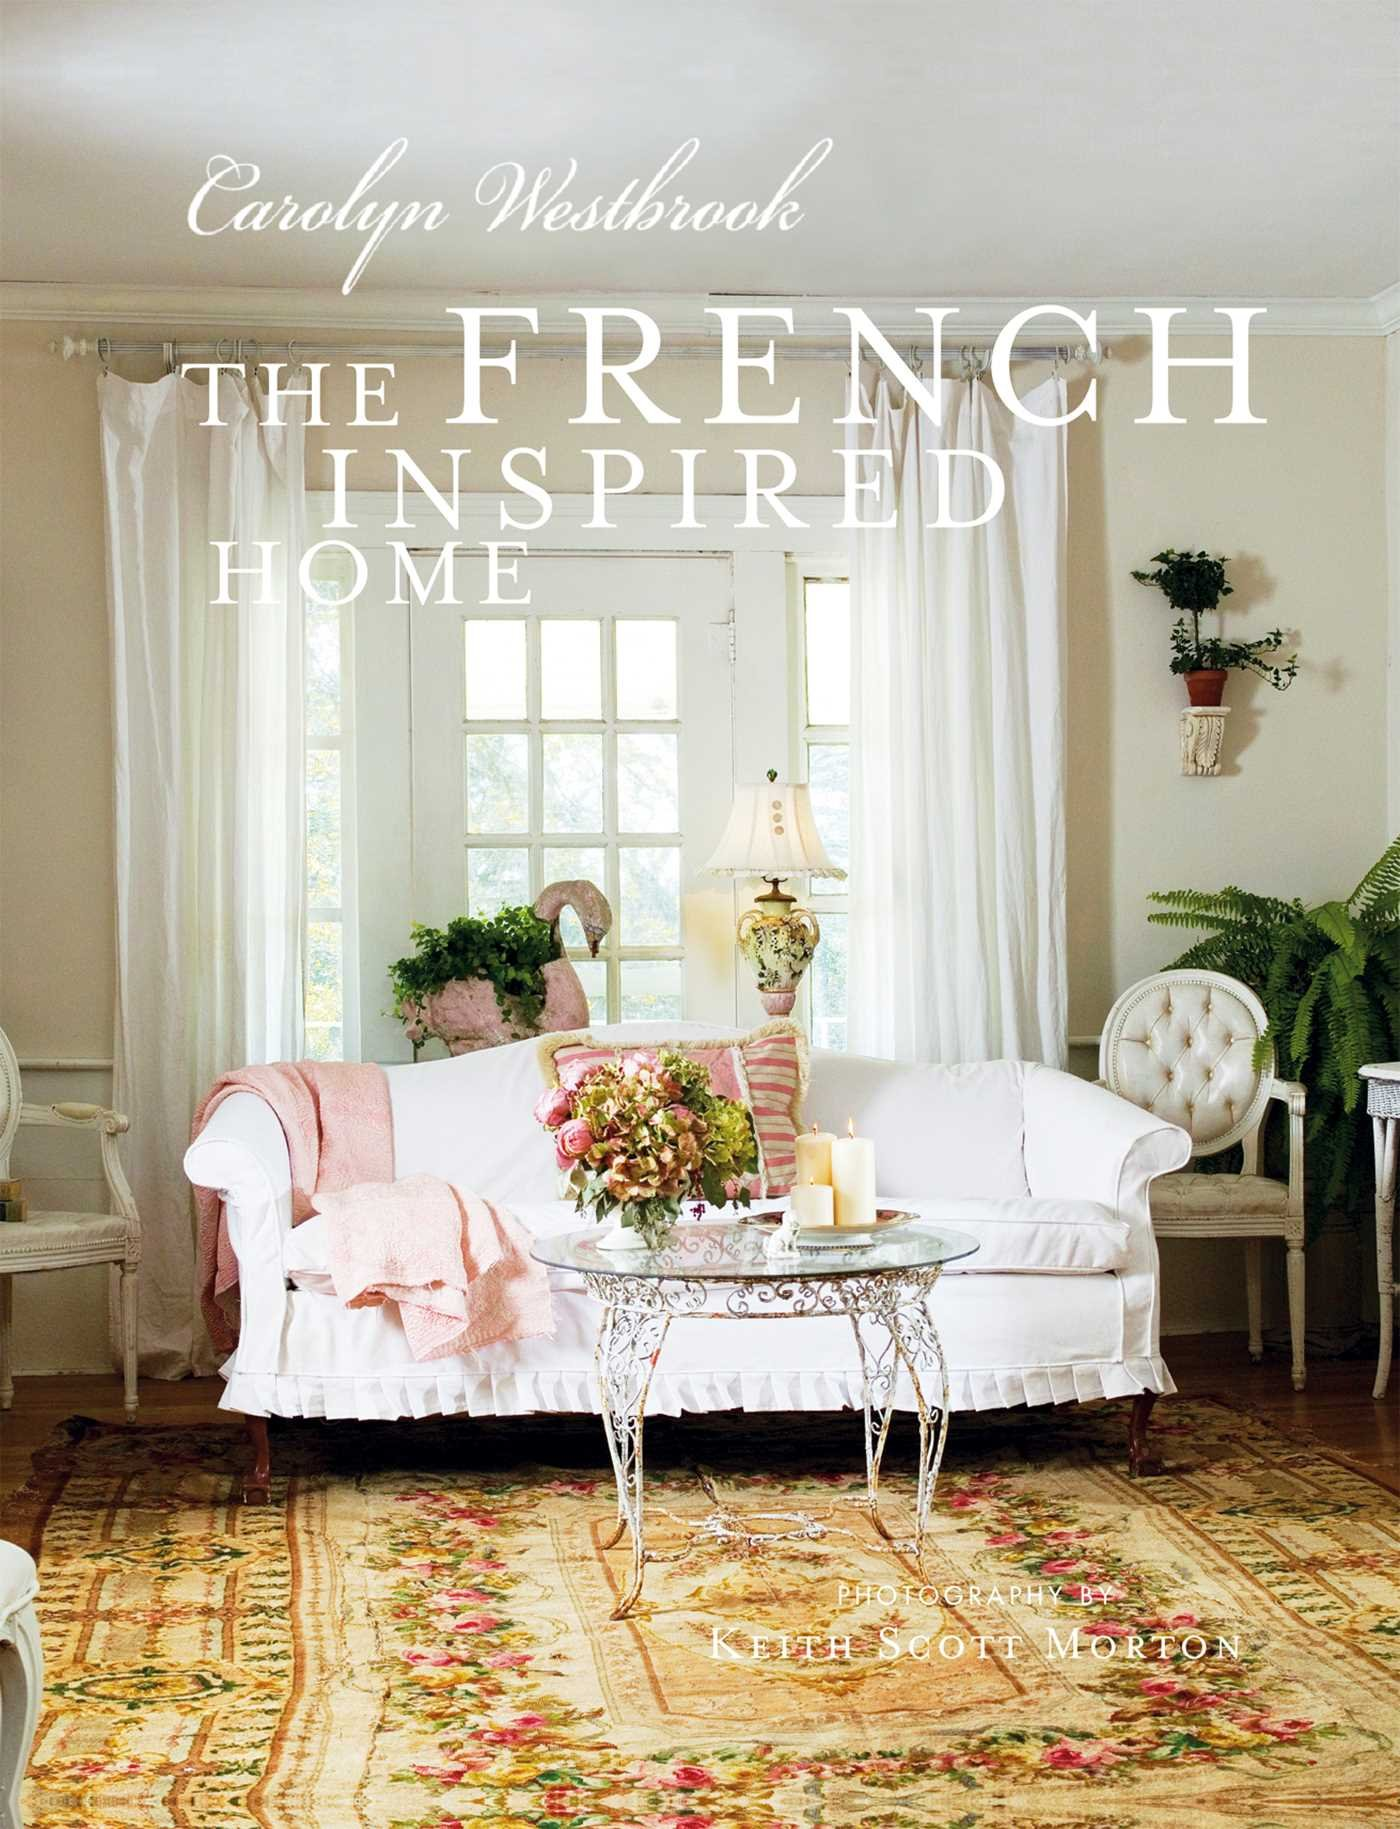 The French Inspired Home: Carolyn Westbrook: 9781907030697: Amazon ...